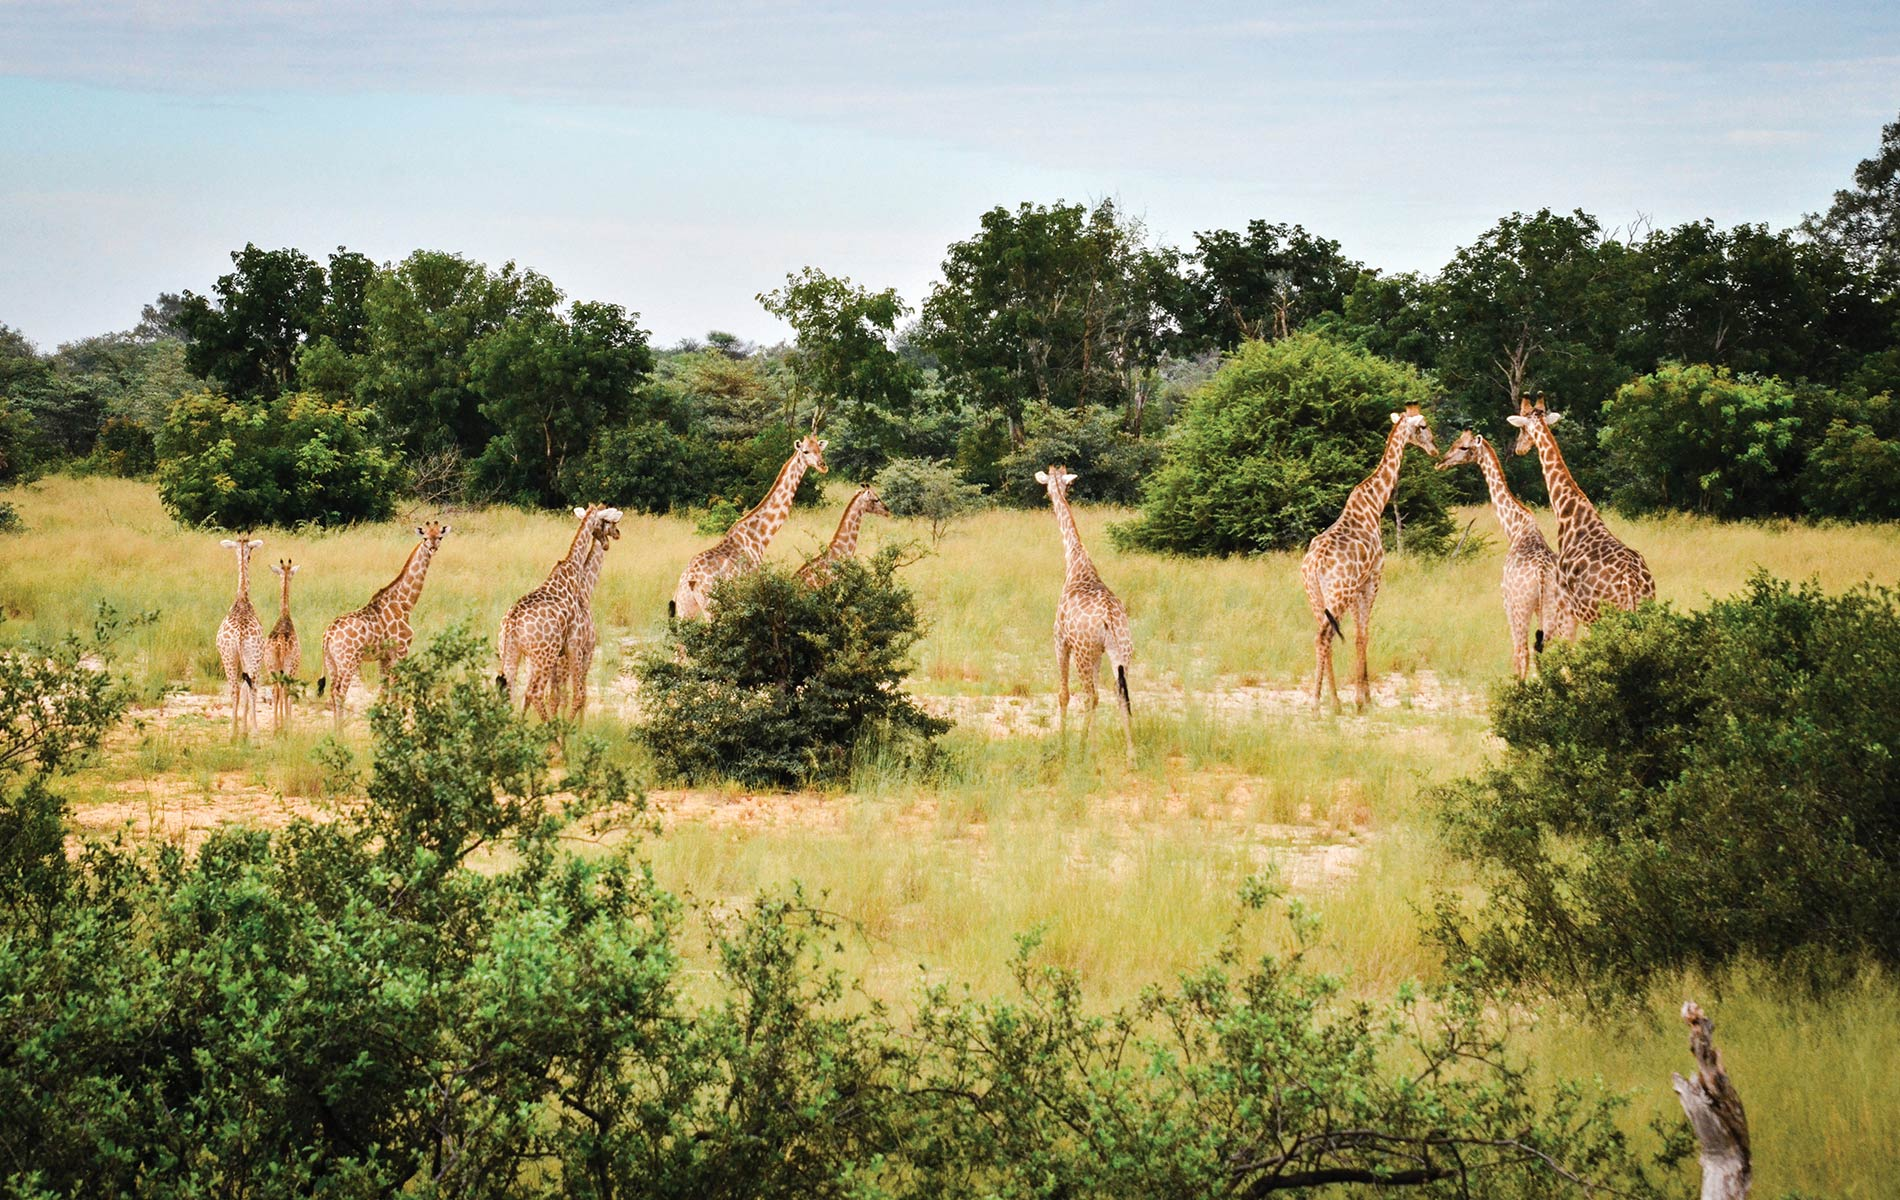 A tower of giraffes heads for their meal of choice—acacia trees—in Namibia's Zambezi region.